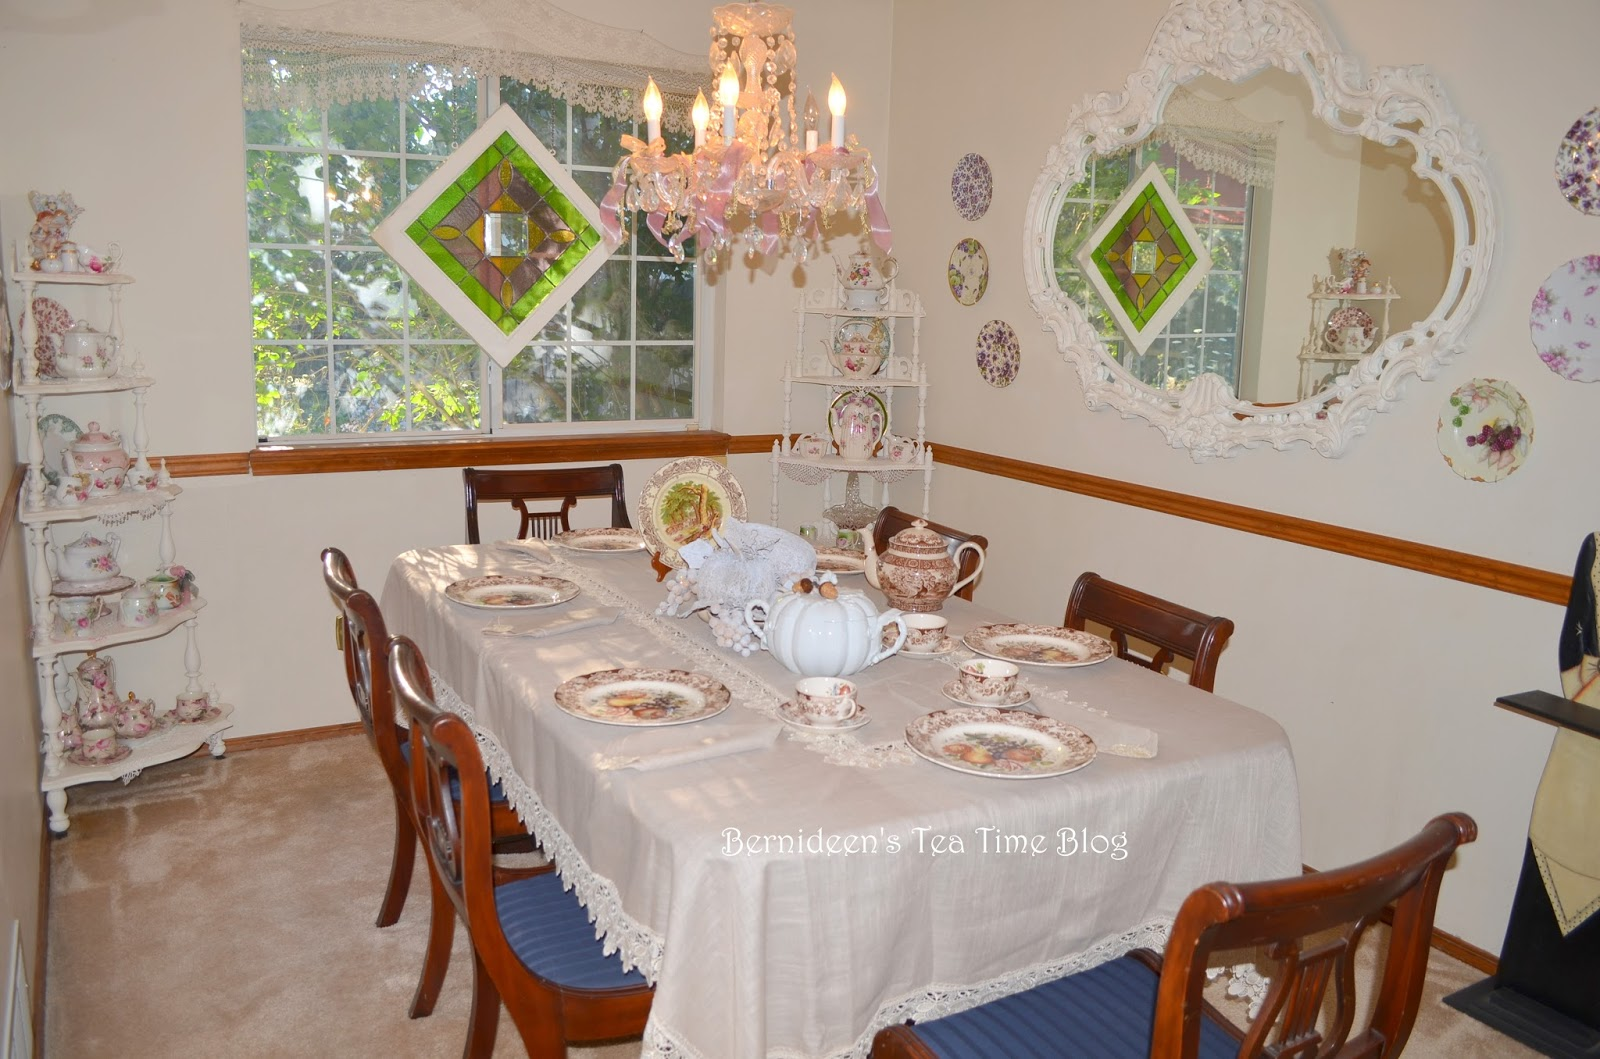 Bernideen's Tea Time, Cottage and Garden: FALL DECOR GOING